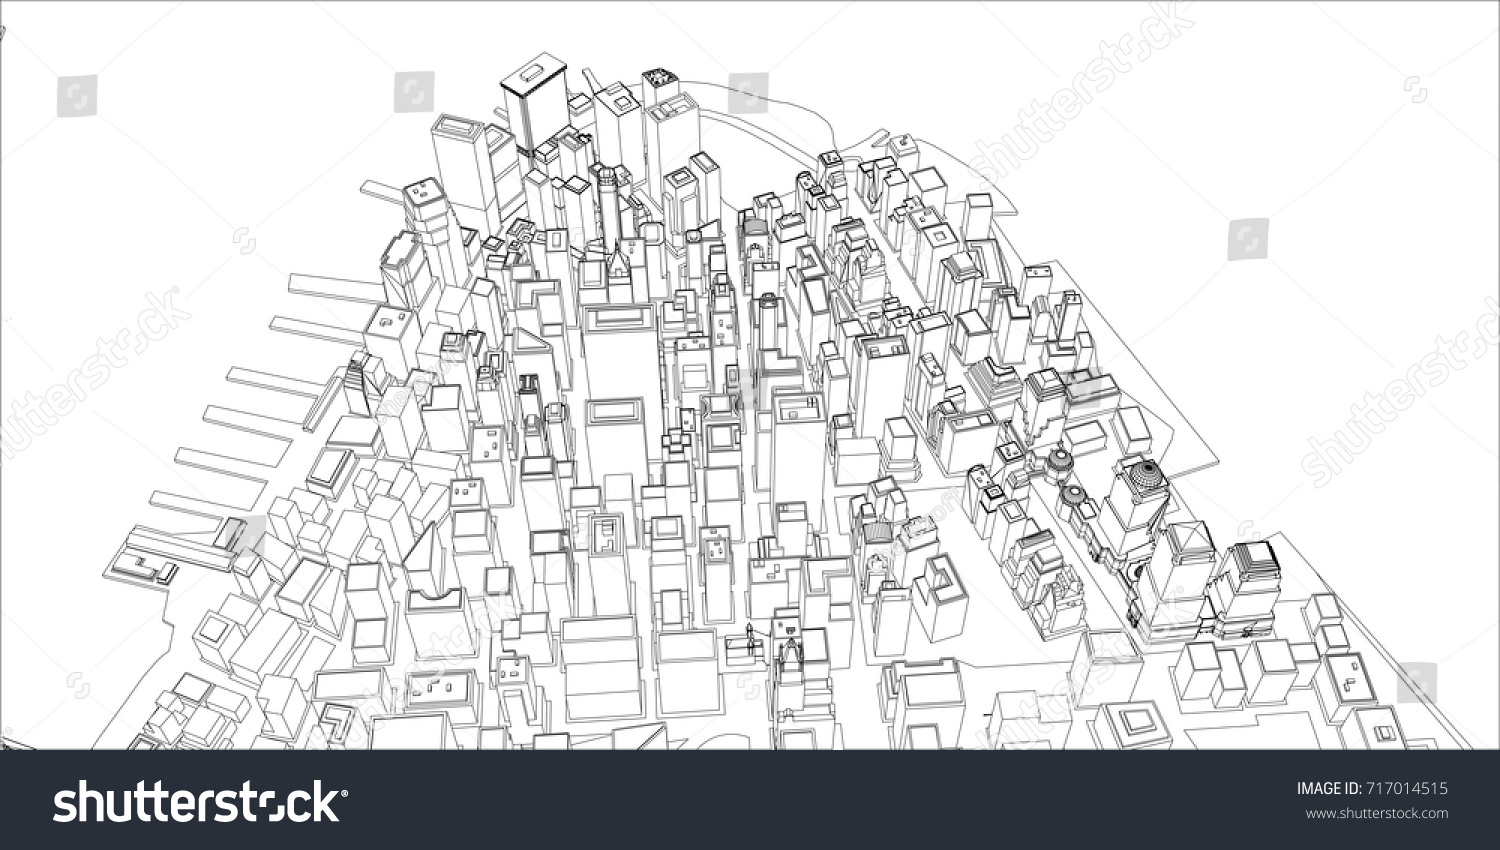 Wireframe new york city blueprint style stock vector 717014515 wire frame new york city blueprint style 3d rendering vector illustration architecture malvernweather Images